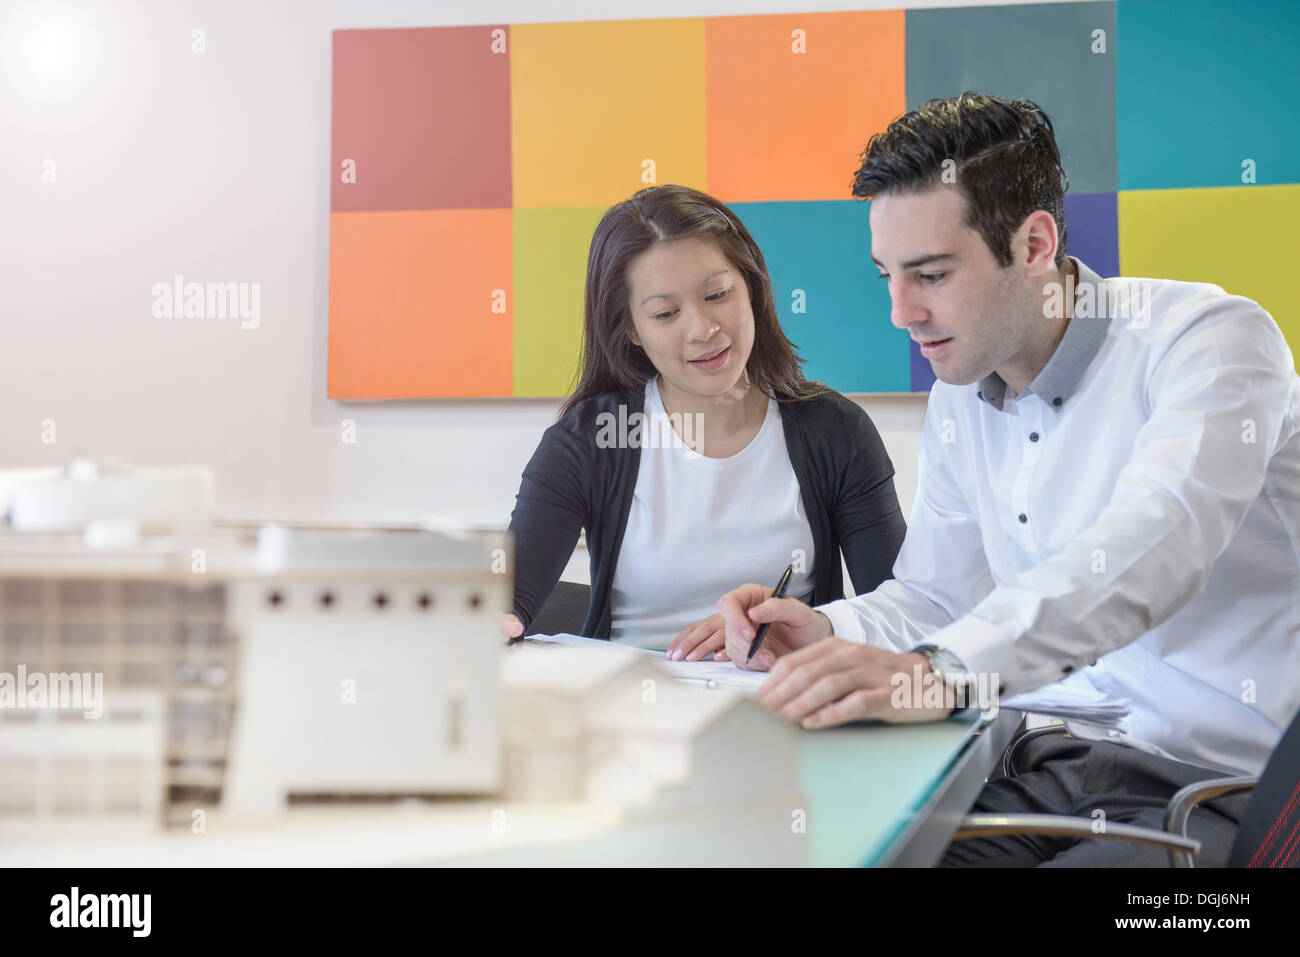 Architects working together in office - Stock Image